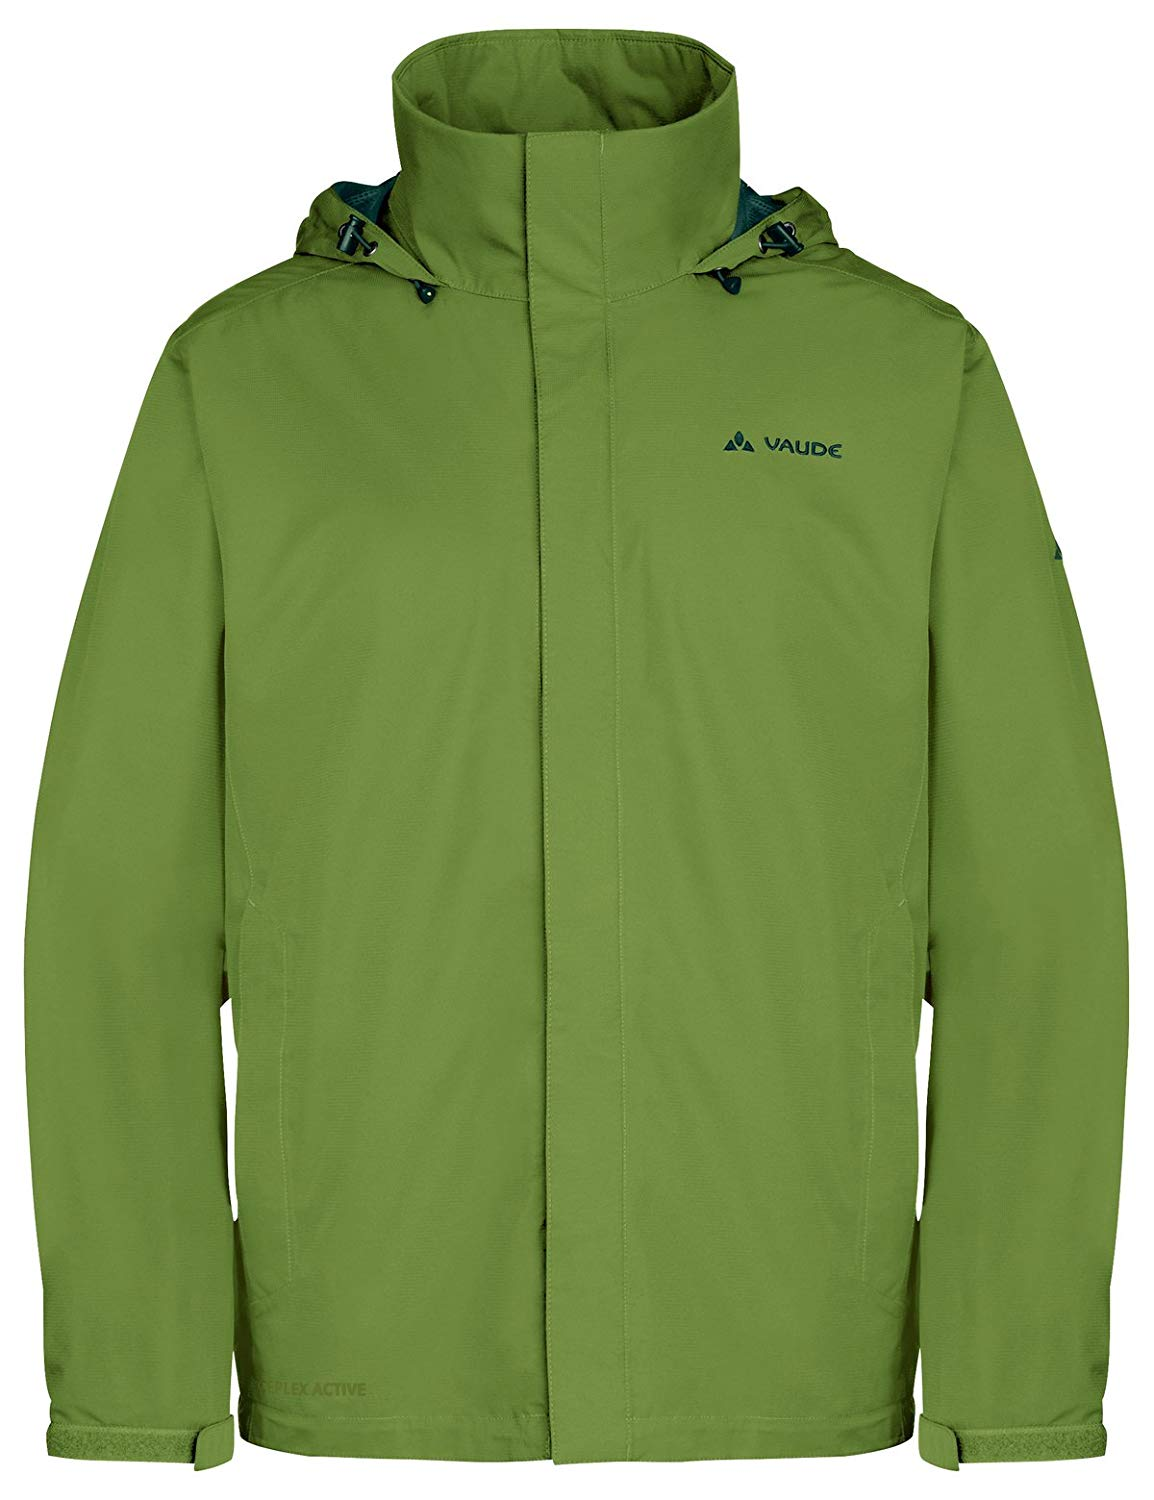 VAUDE Men's Escape Light Rain Jacket - Lightweight Waterproof Jacket - Rain Jacket for Walking, Hiking or Cycling